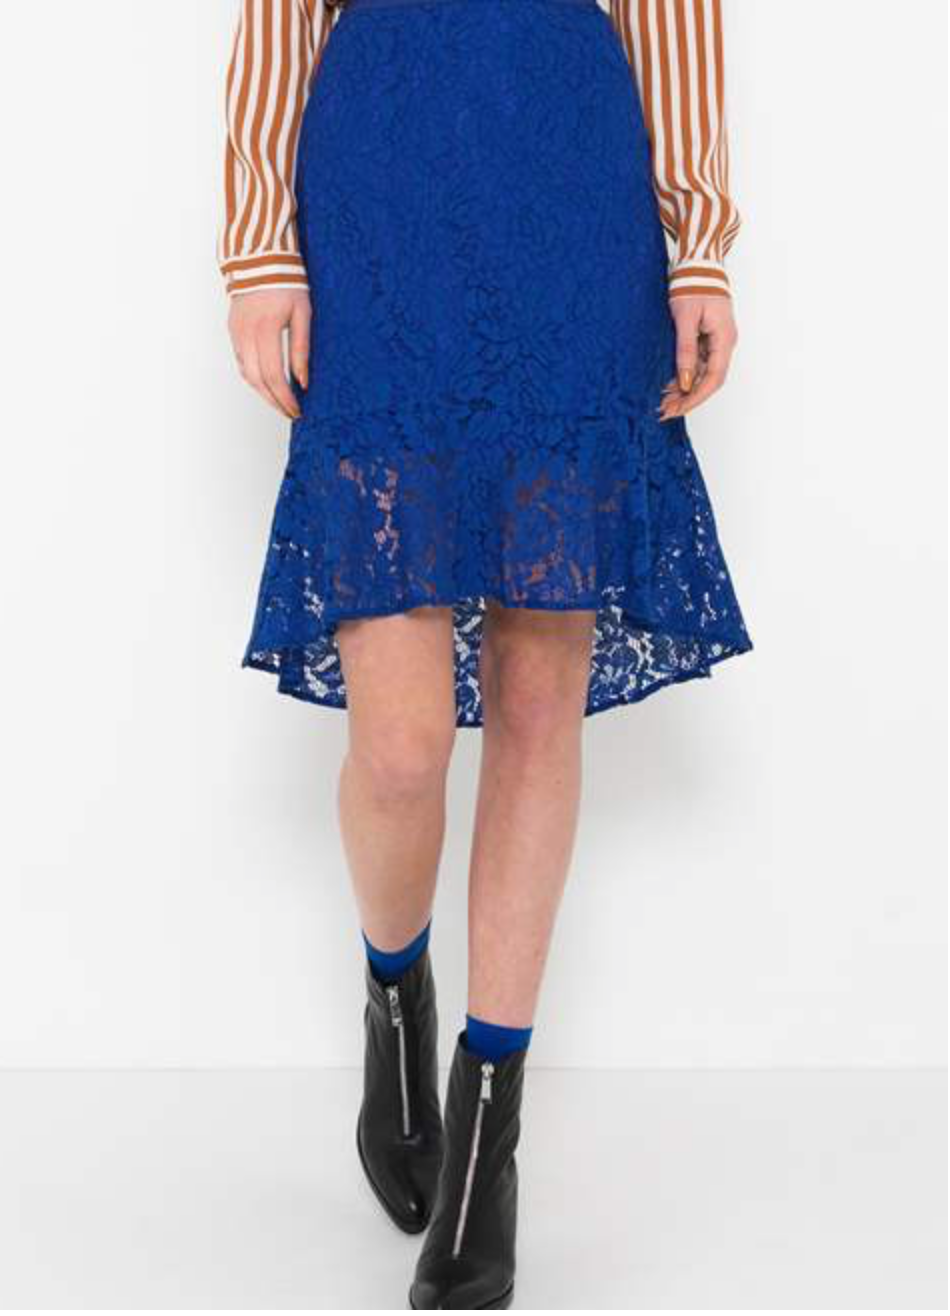 Saint Tropez Royal Blue Lace Skirt